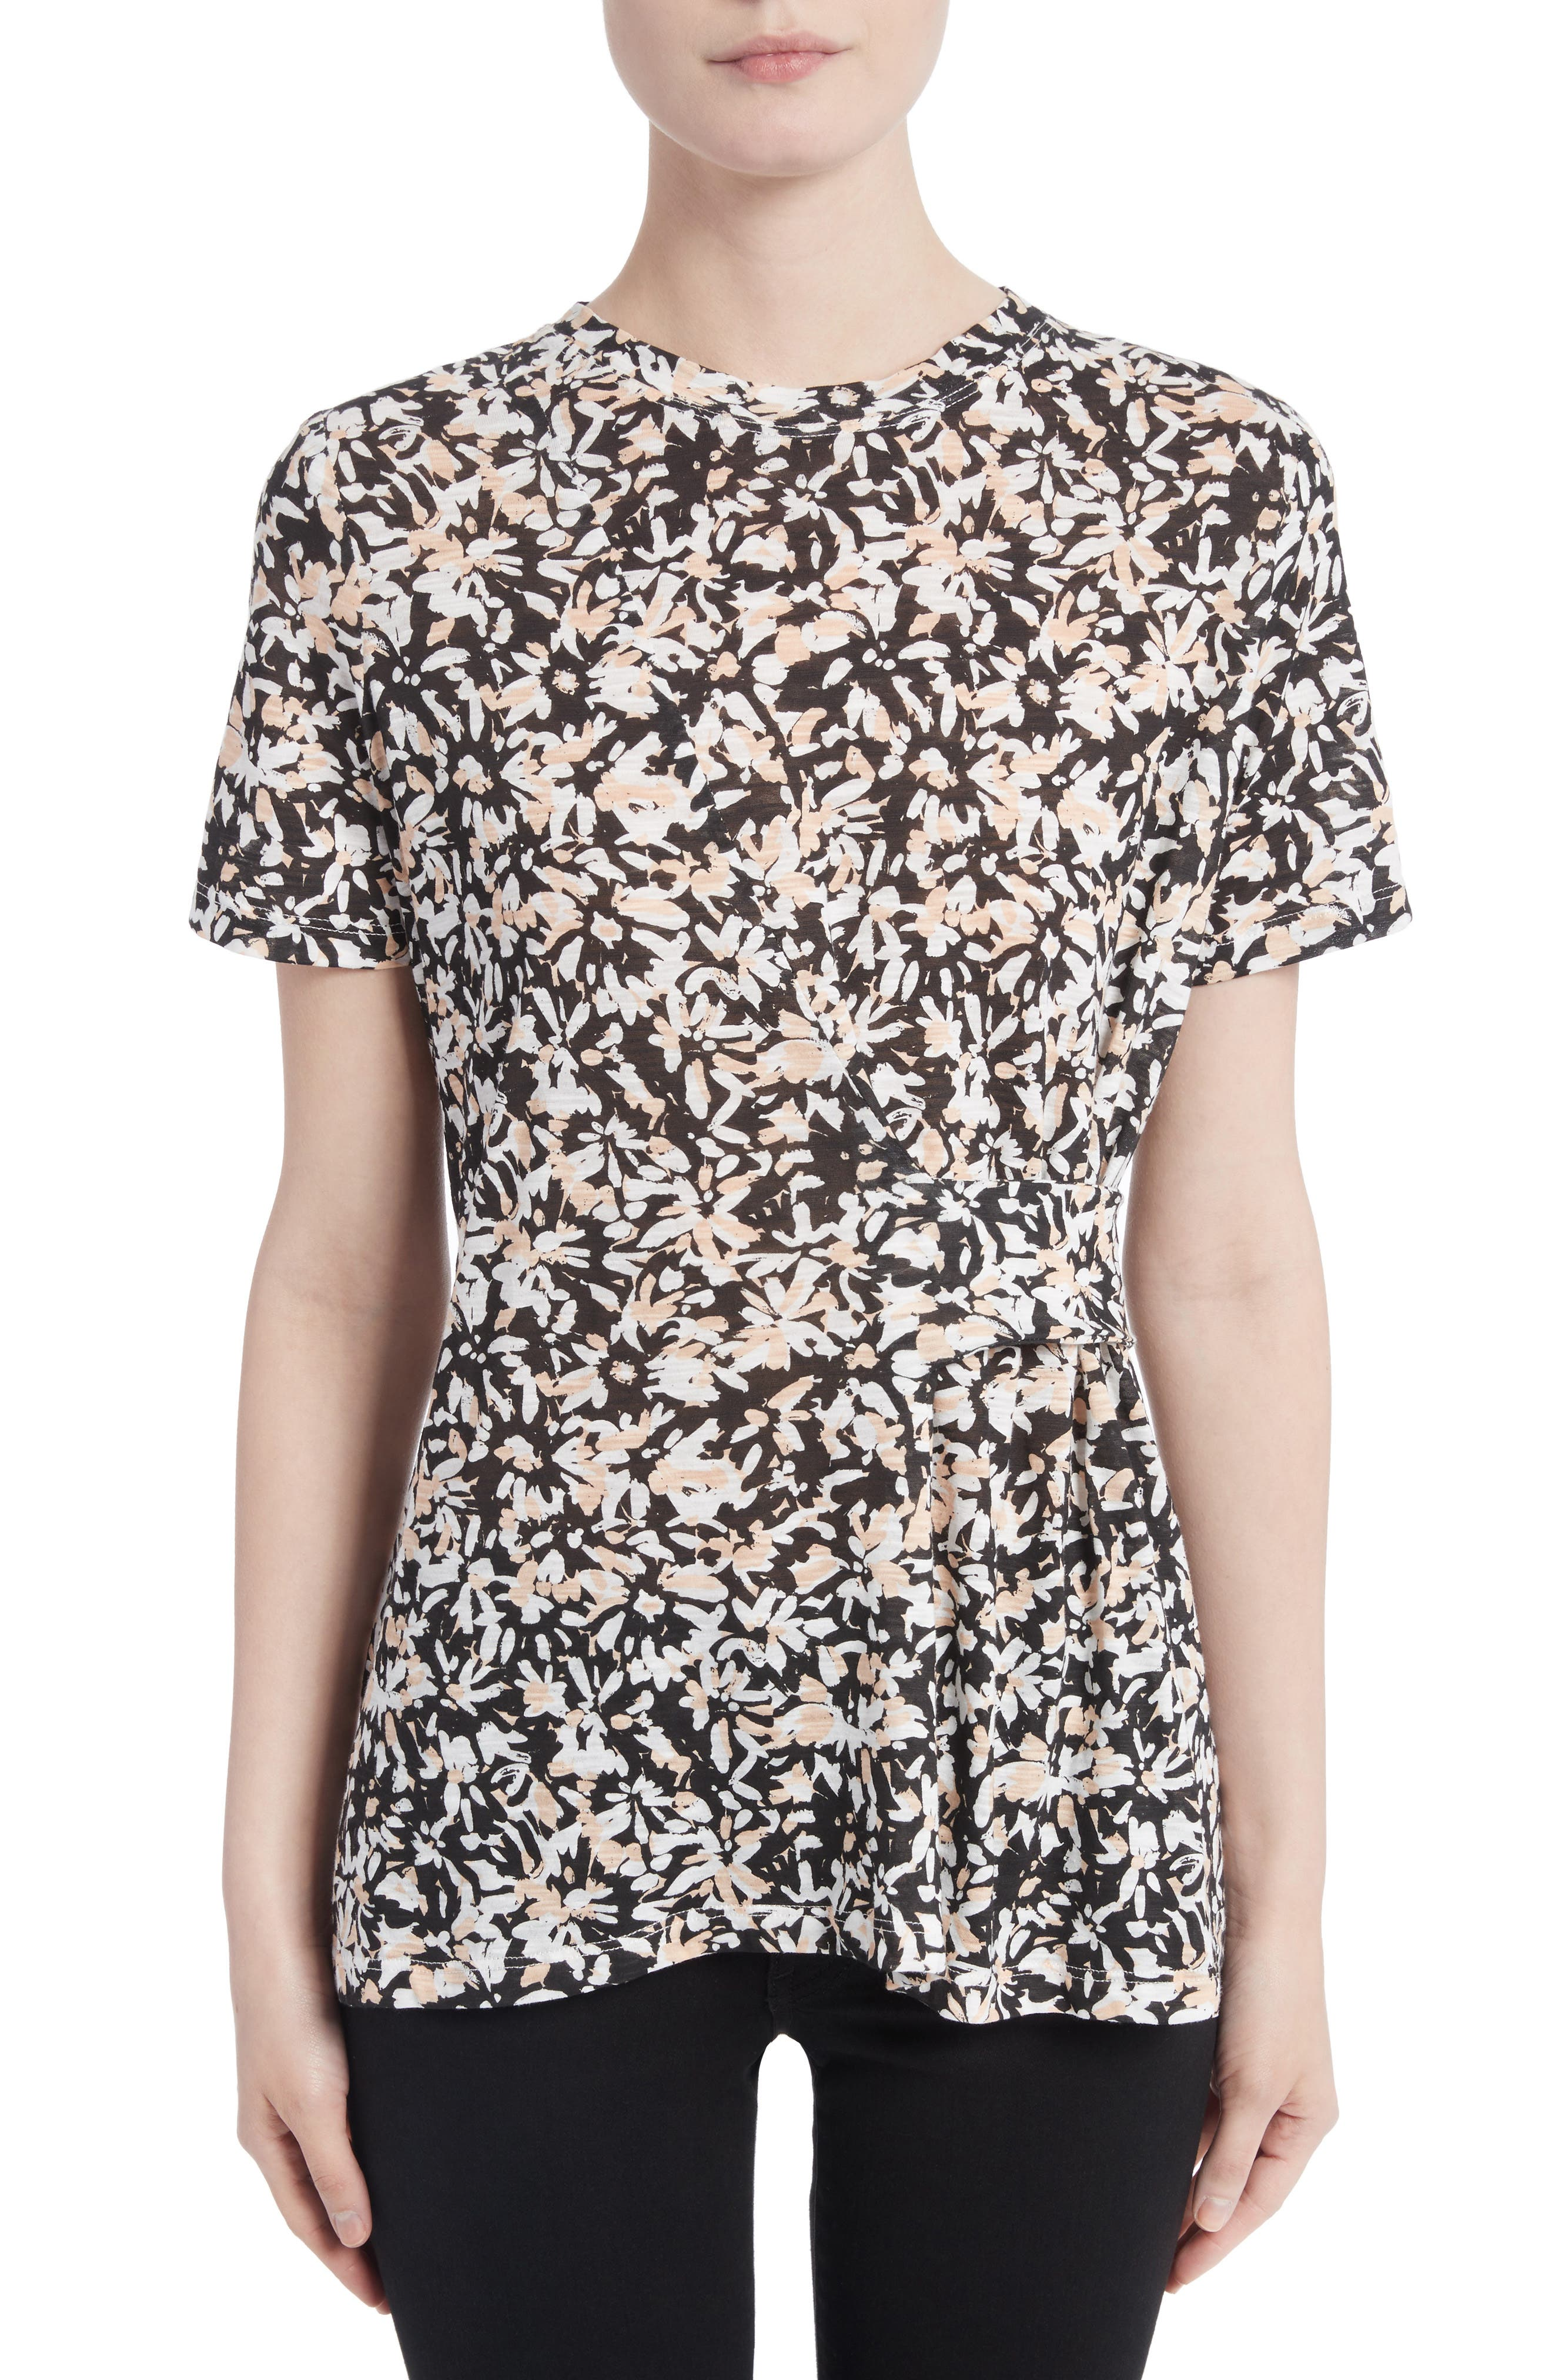 Band Detail Print Tissue Jersey Tee,                         Main,                         color, Nude/ Black Painted Floral